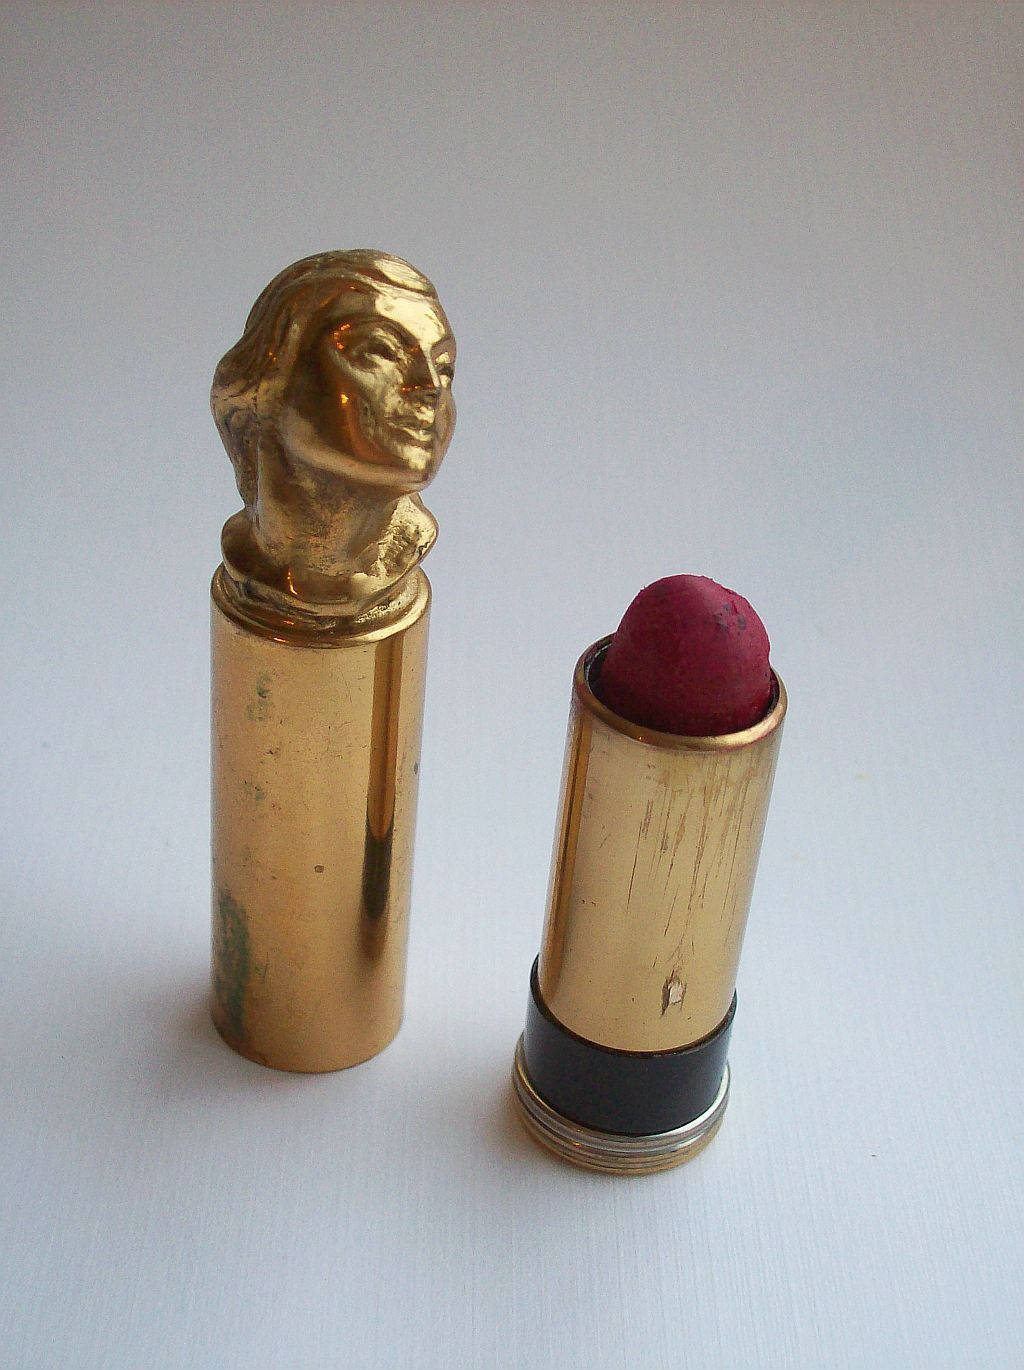 Fancy Lipstick Case Vintage cosmetics, Vintage makeup